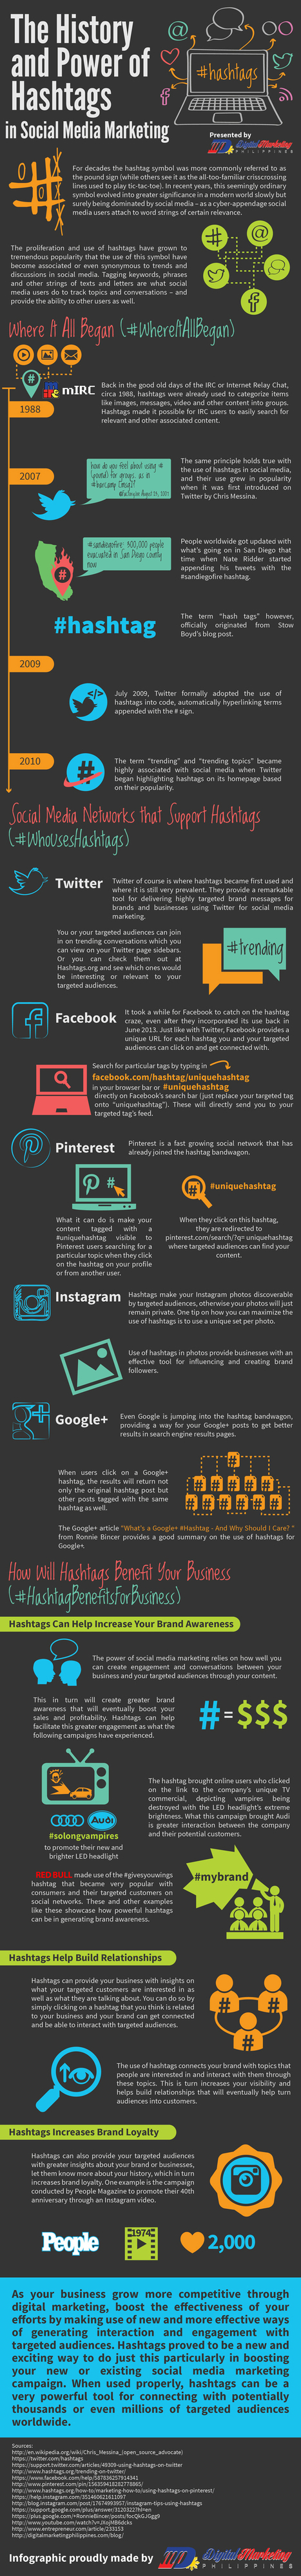 The History and Power of Hashtags in Social Media Marketing (Infographic) | Healthcare Social Media News | Scoop.it